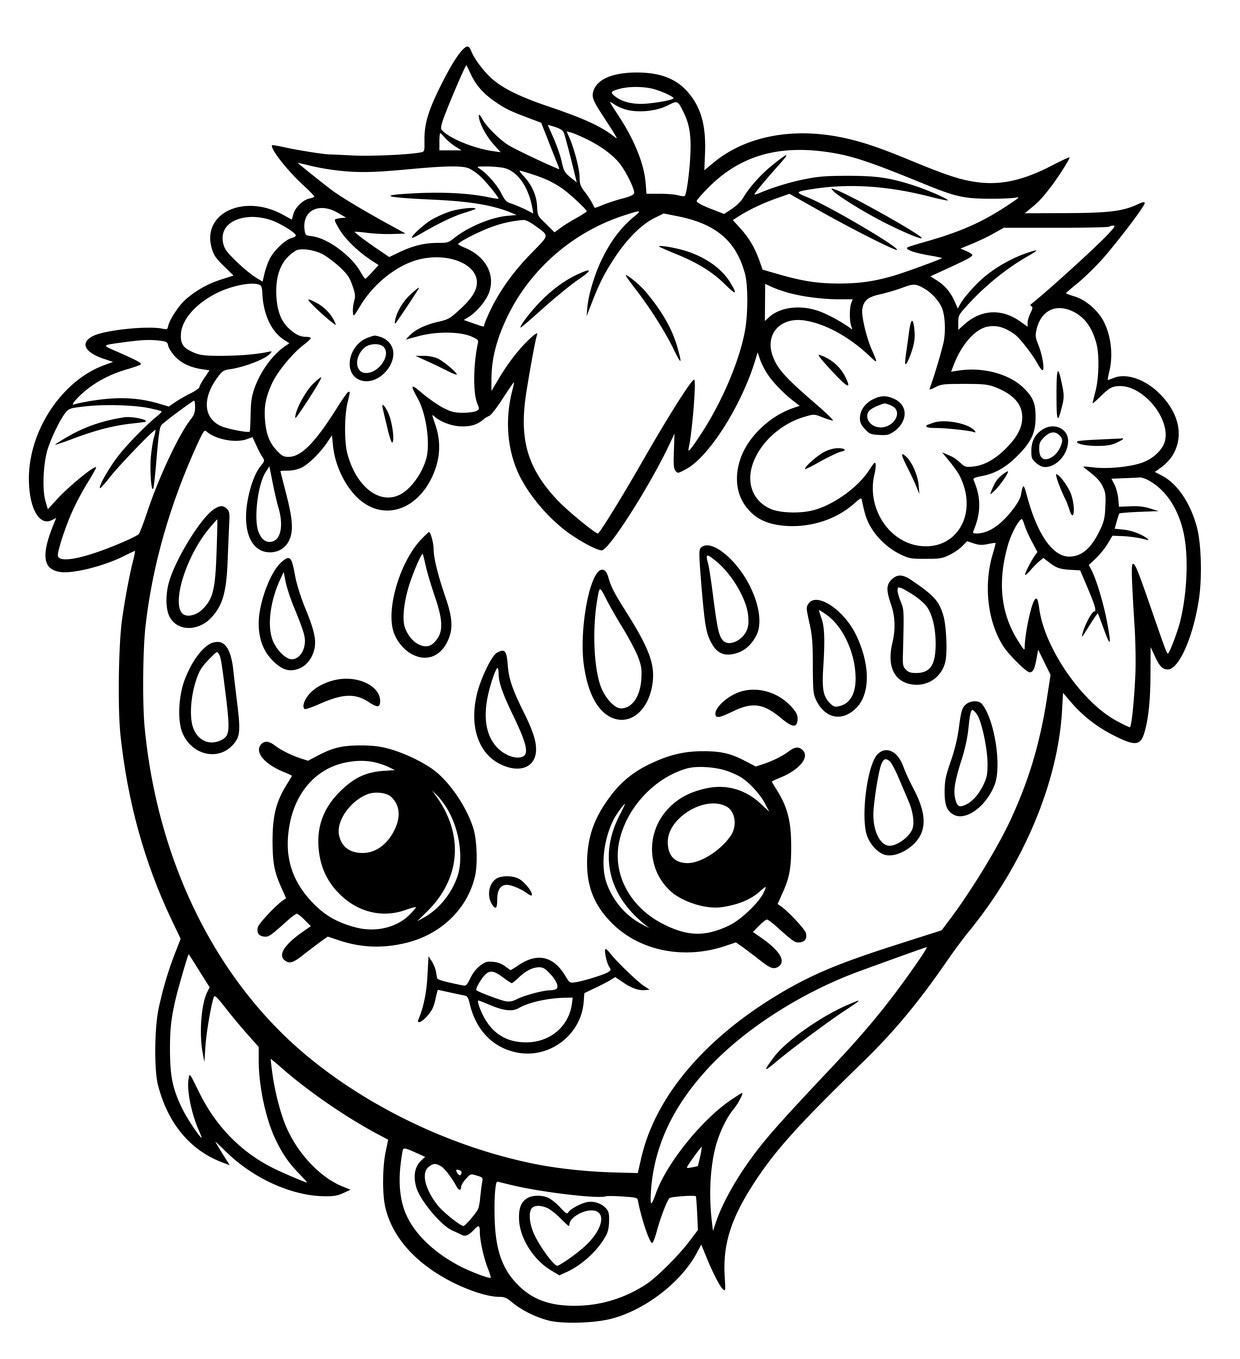 1240x1359 full size shopkins coloring pages beautiful shopkins coloring